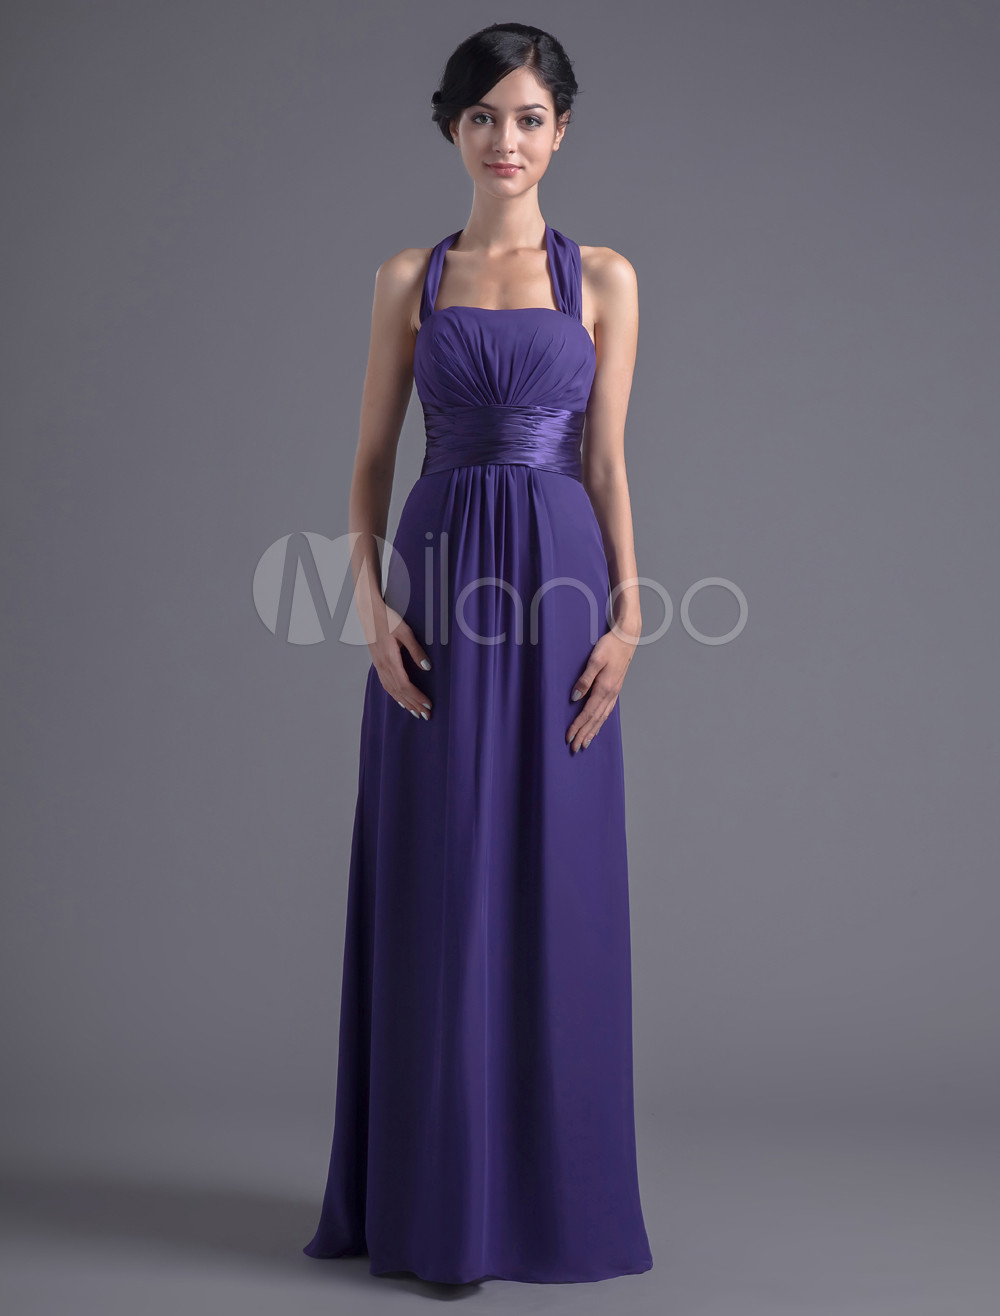 Deep purple bridesmaid dresses gown and dress gallery deep purple bridesmaid dresses hd image ombrellifo Gallery